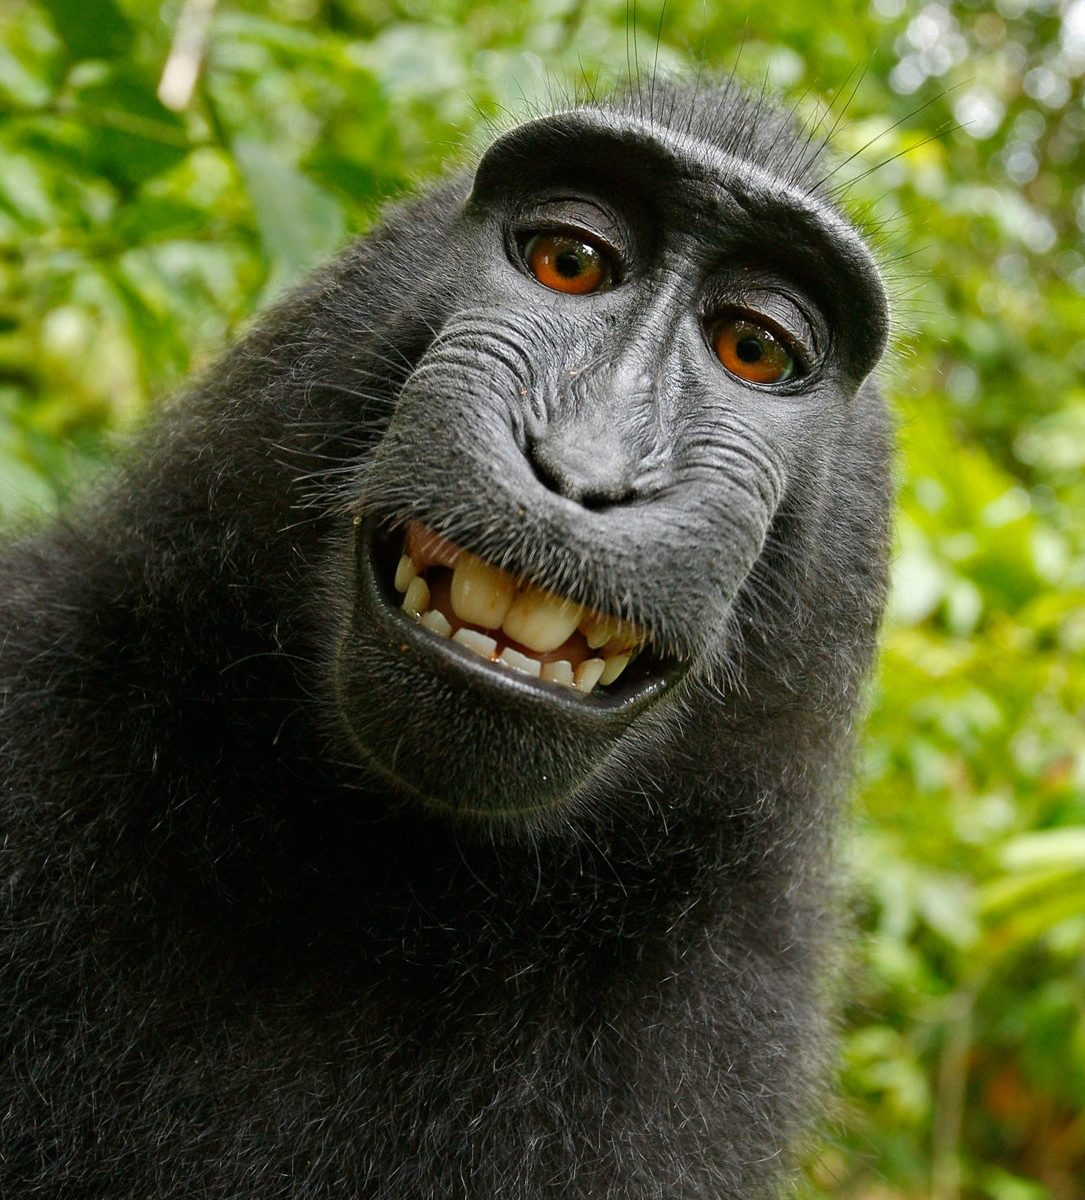 Cheeky monkey smiling at the camera. Just like me this January!